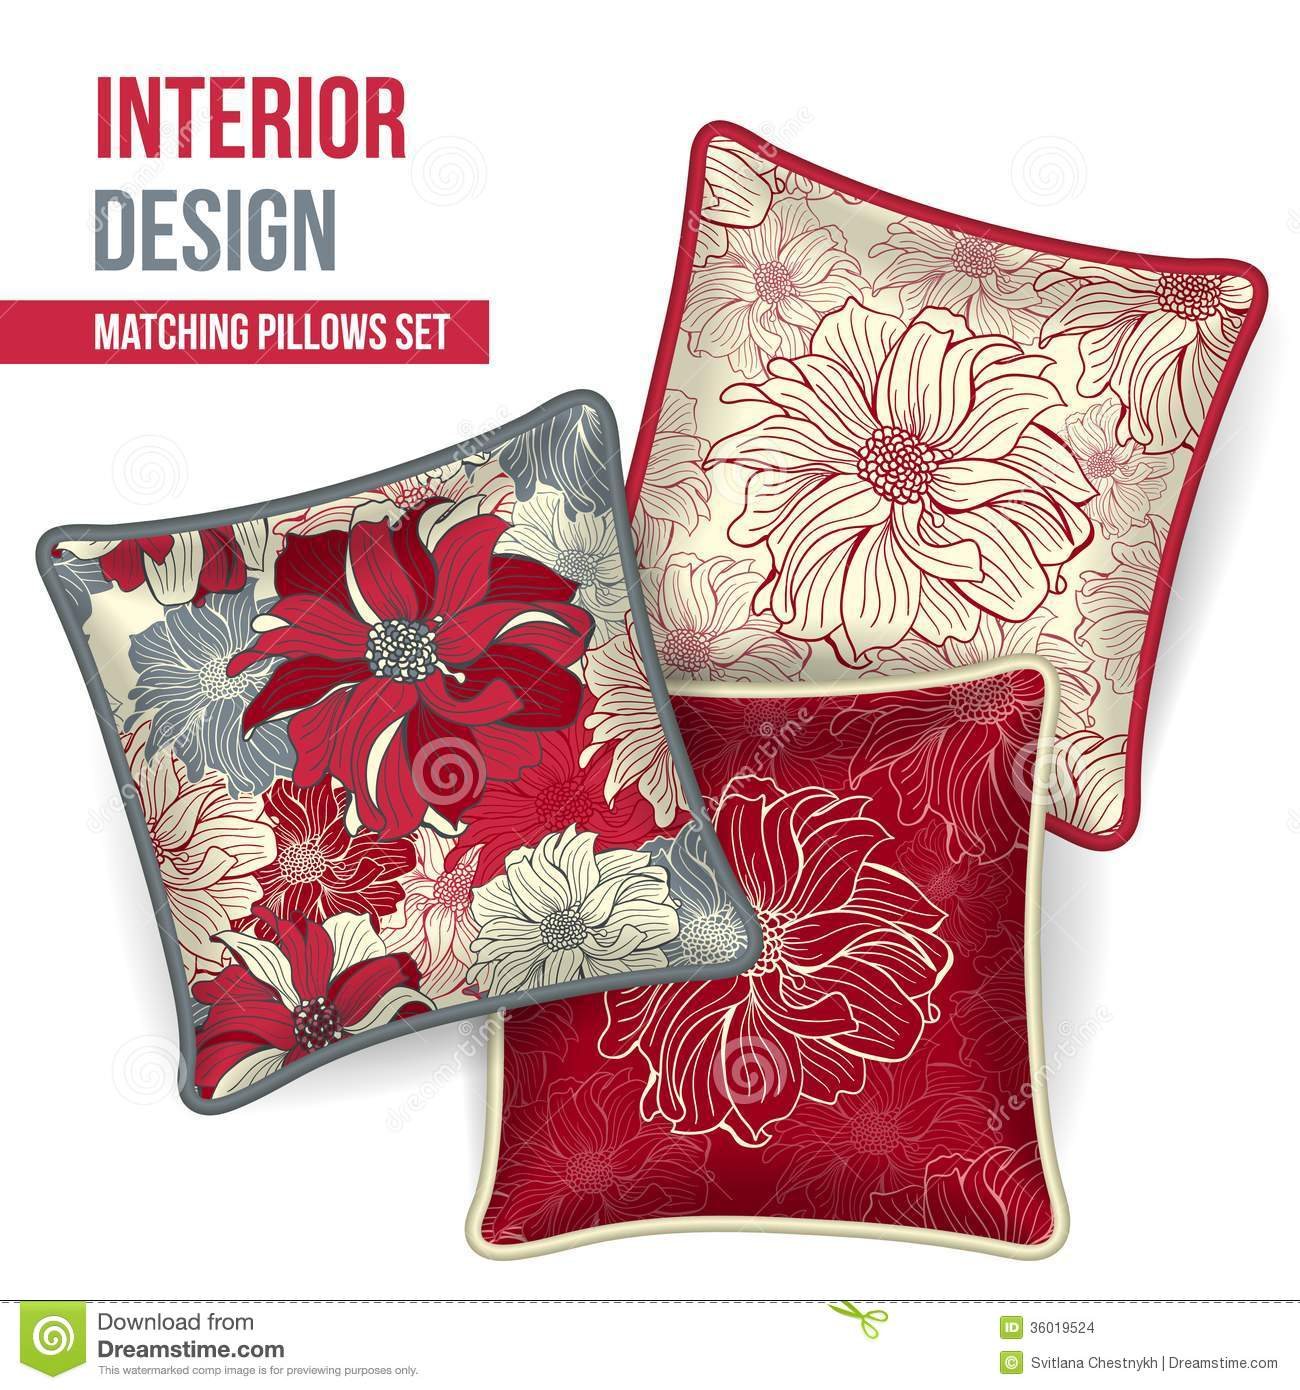 Set of matching decorative pillows for interior design red flower